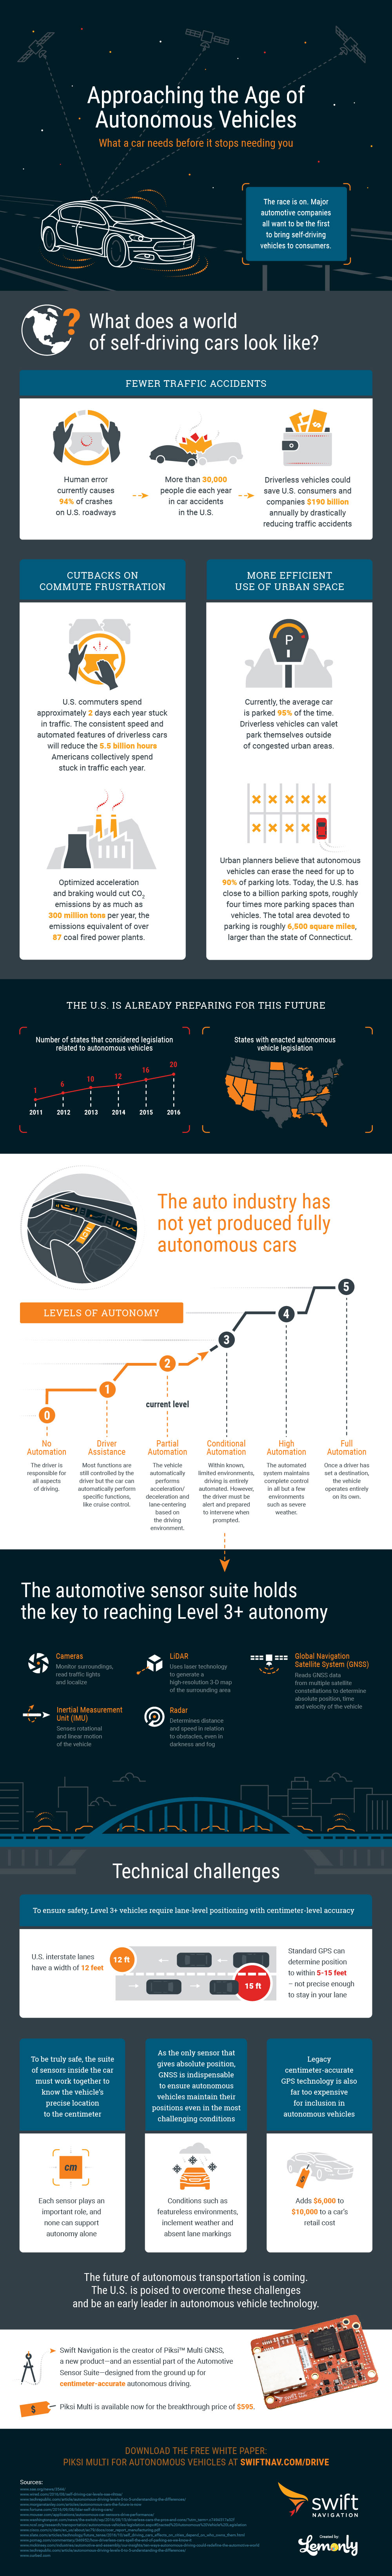 Autonomous Vehicles Taking Over? - Infographic